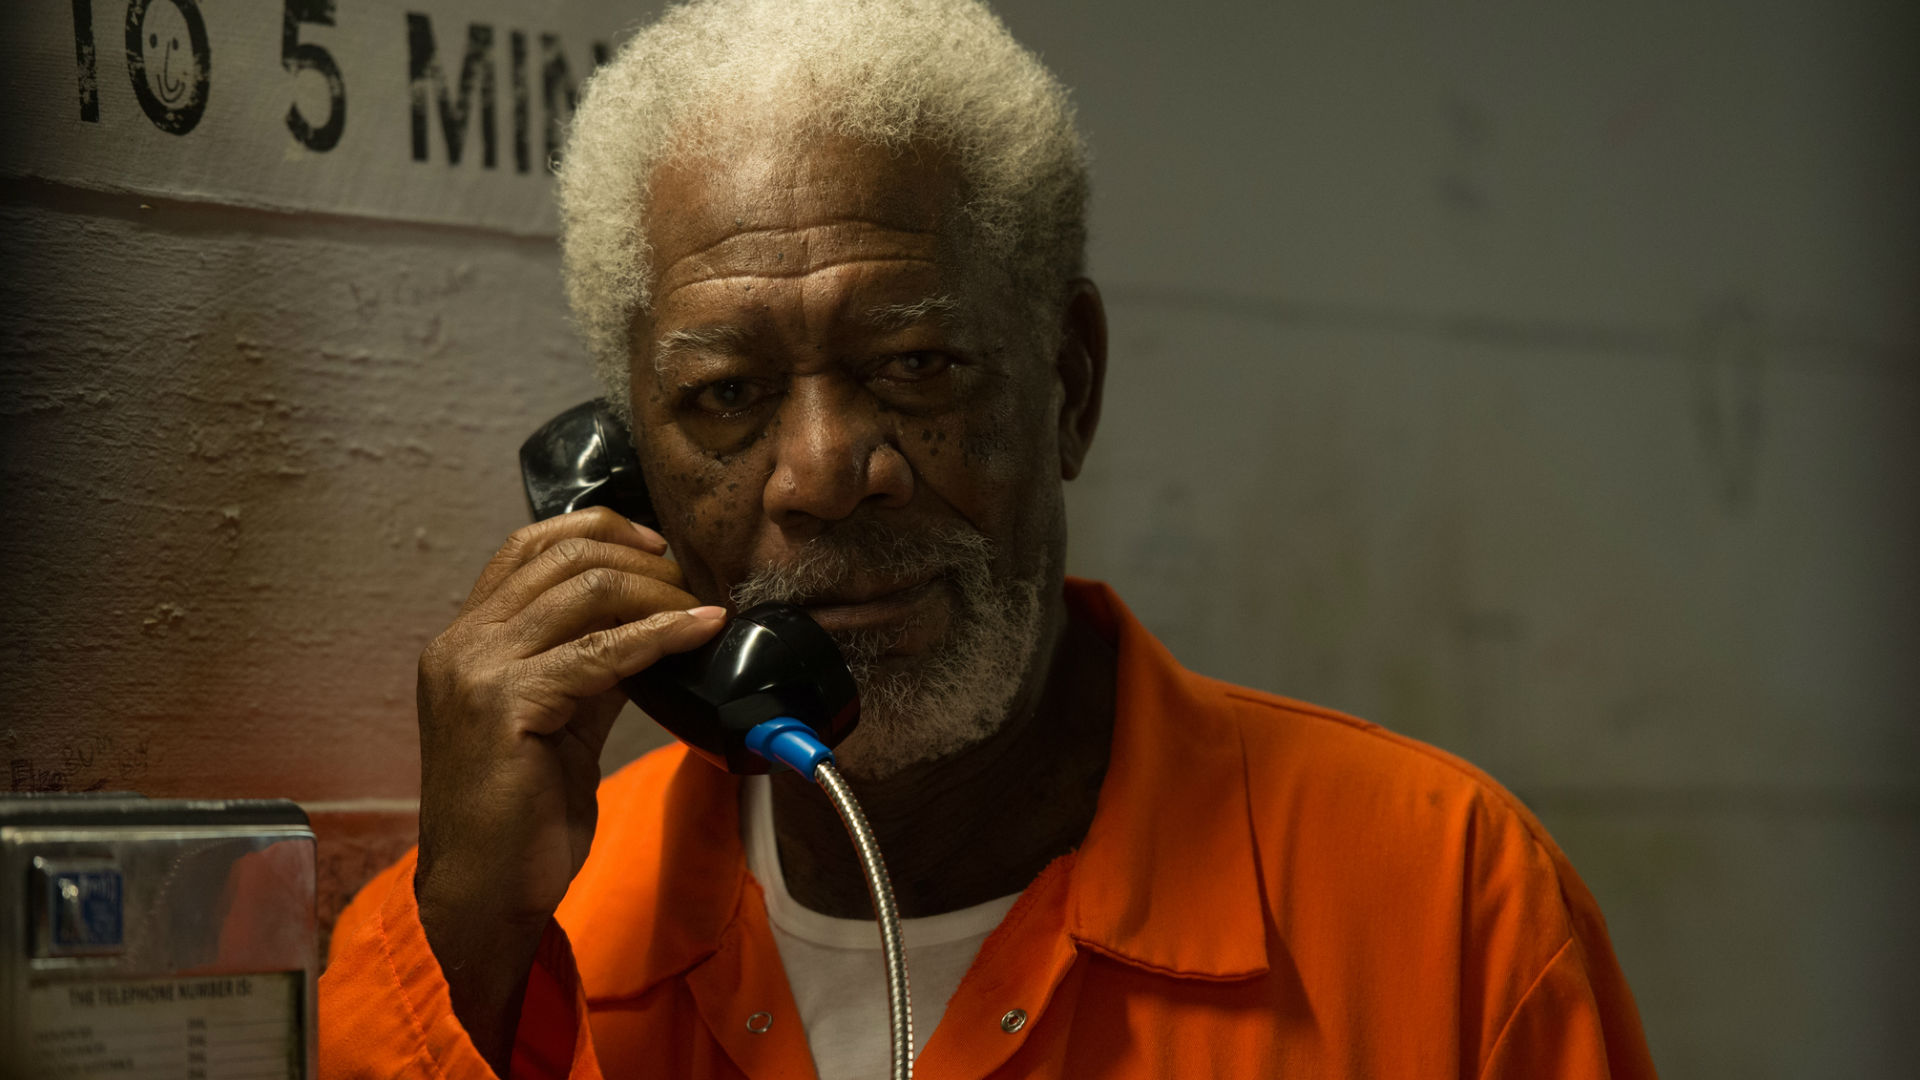 Morgan Freeman in Now You See Me 2